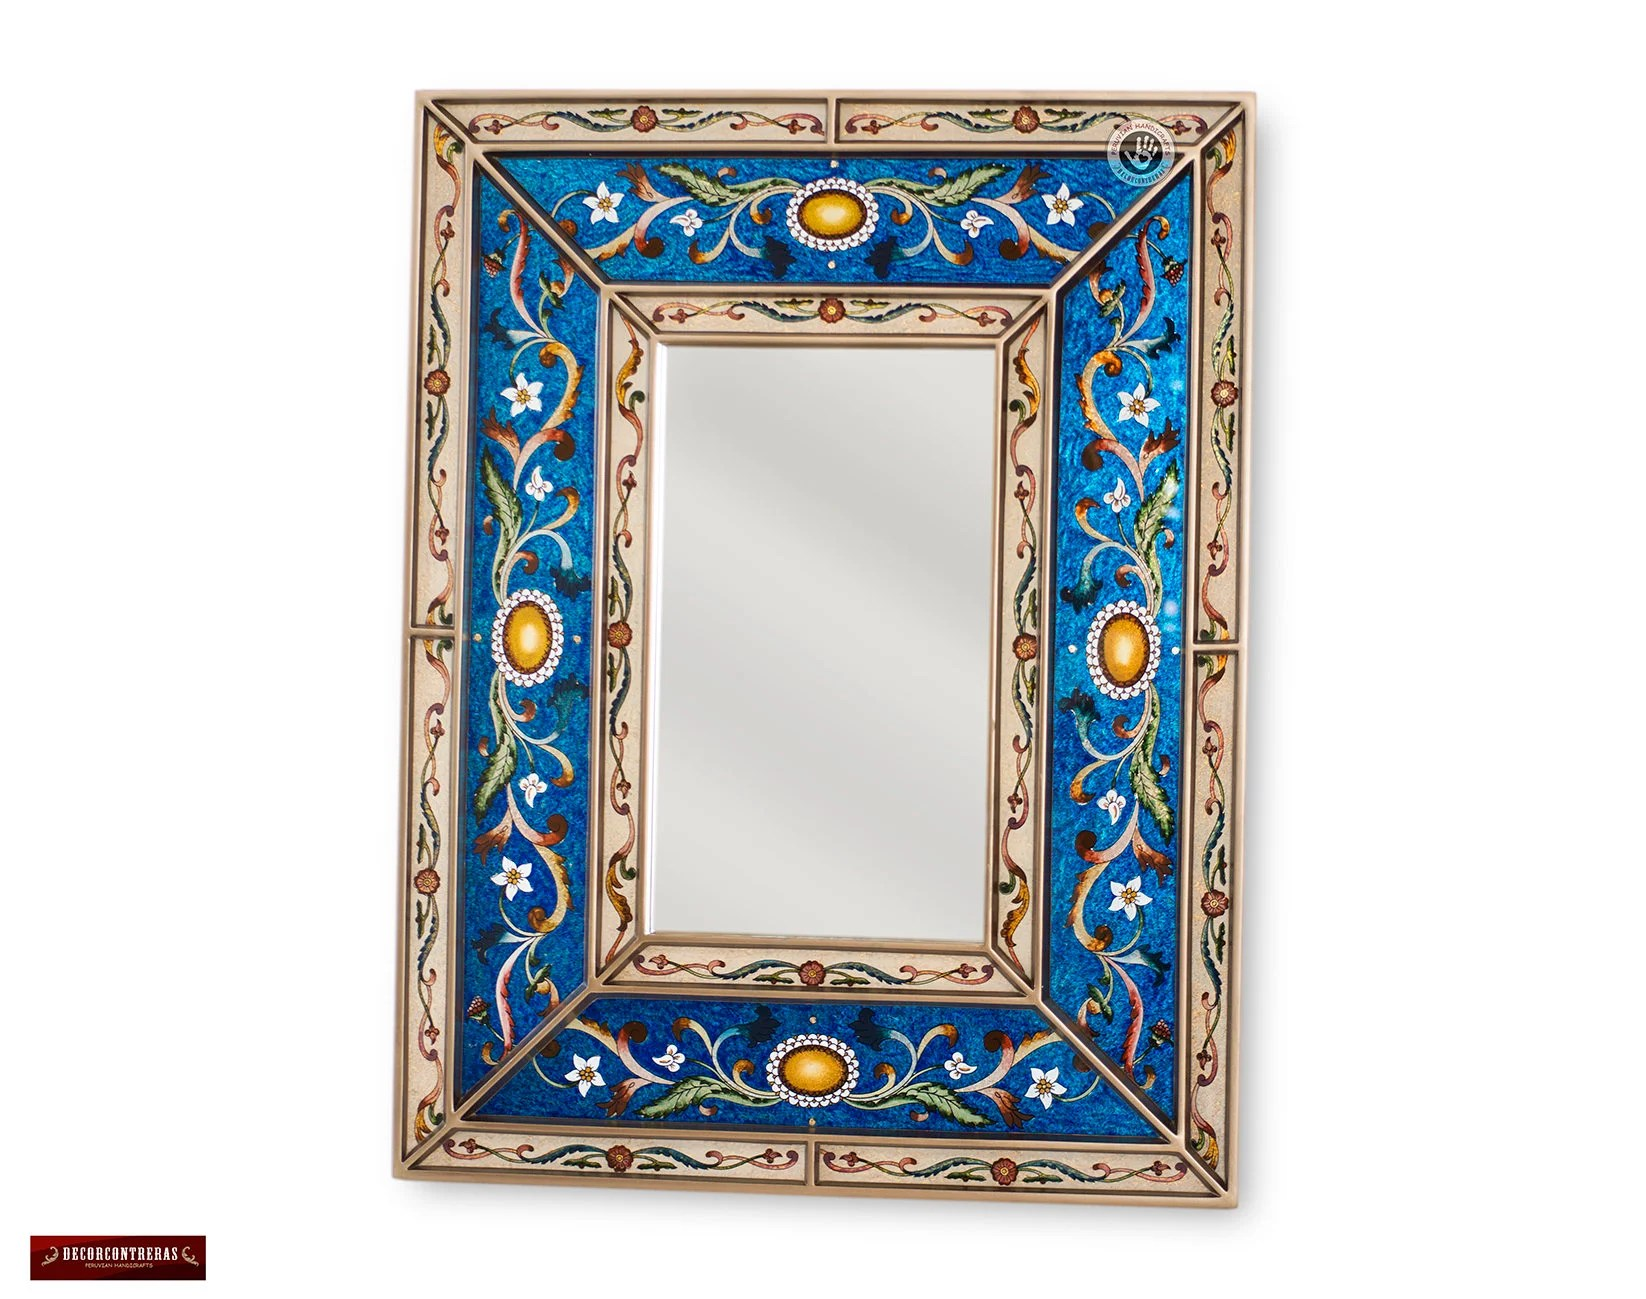 Decorative Mirror Peruvian Blue Decorative Mirror Arts Crafts Mirror Wall Vanity Mirror Hand Painted Glass Wood Rectangular Wall Mirror Wall Mirrors